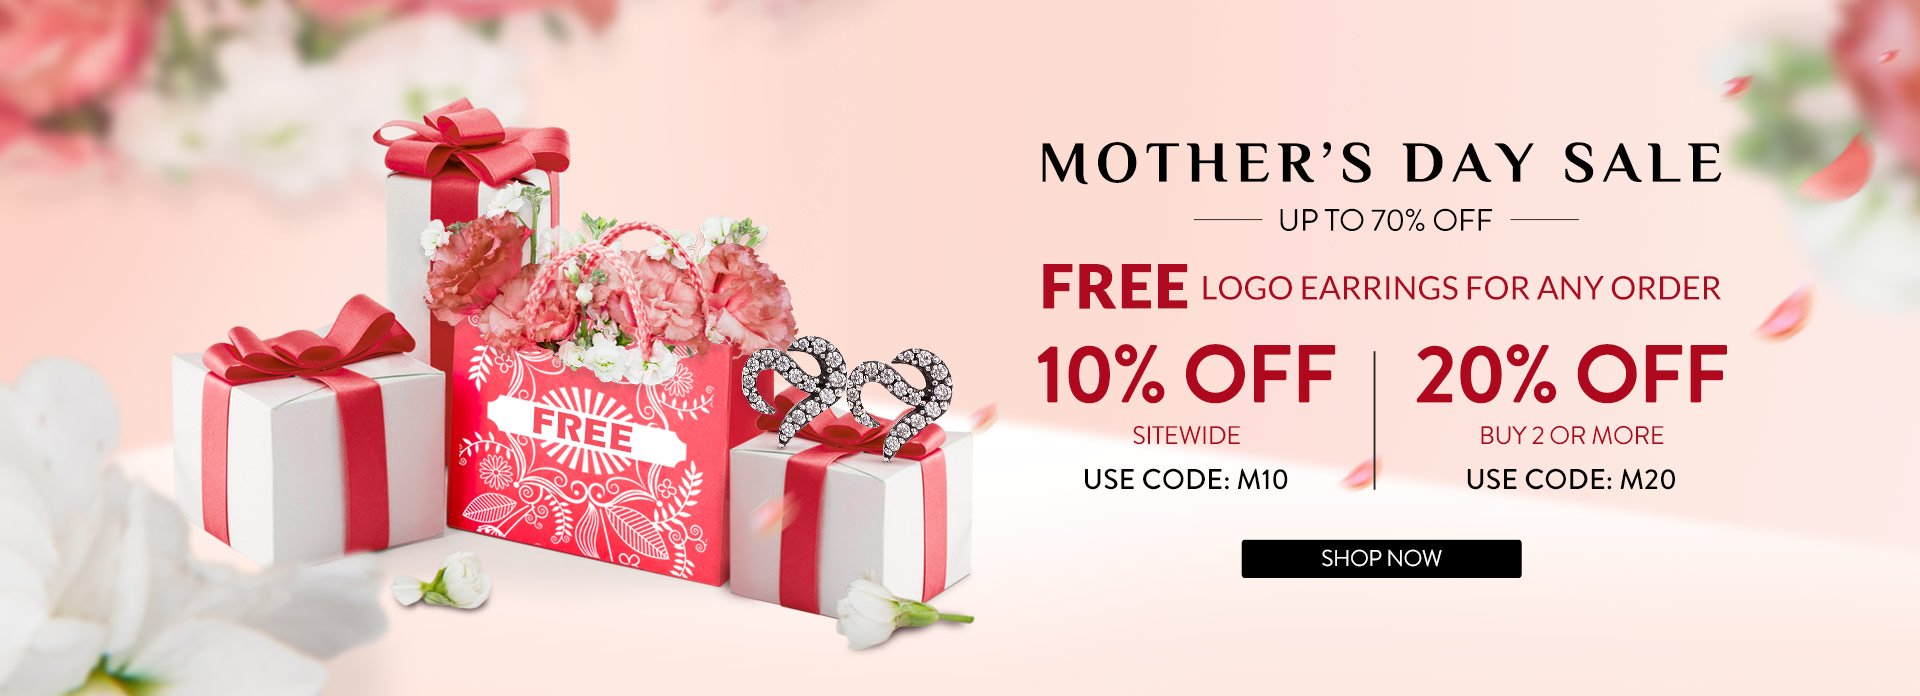 Jeulia Mother's Day Sale 2020